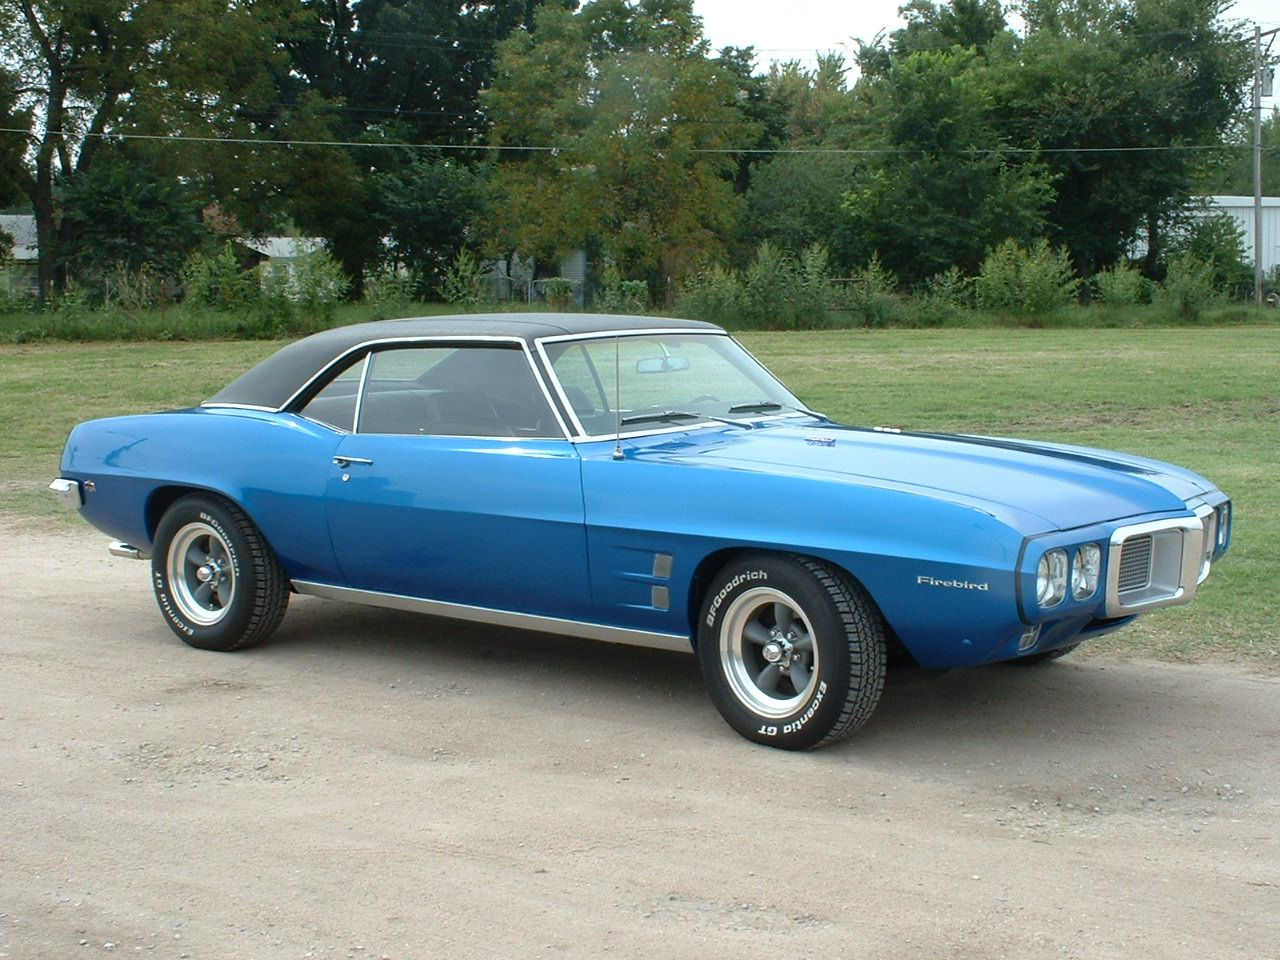 69 firebird this is exactly what mine looked like black vinyl top and